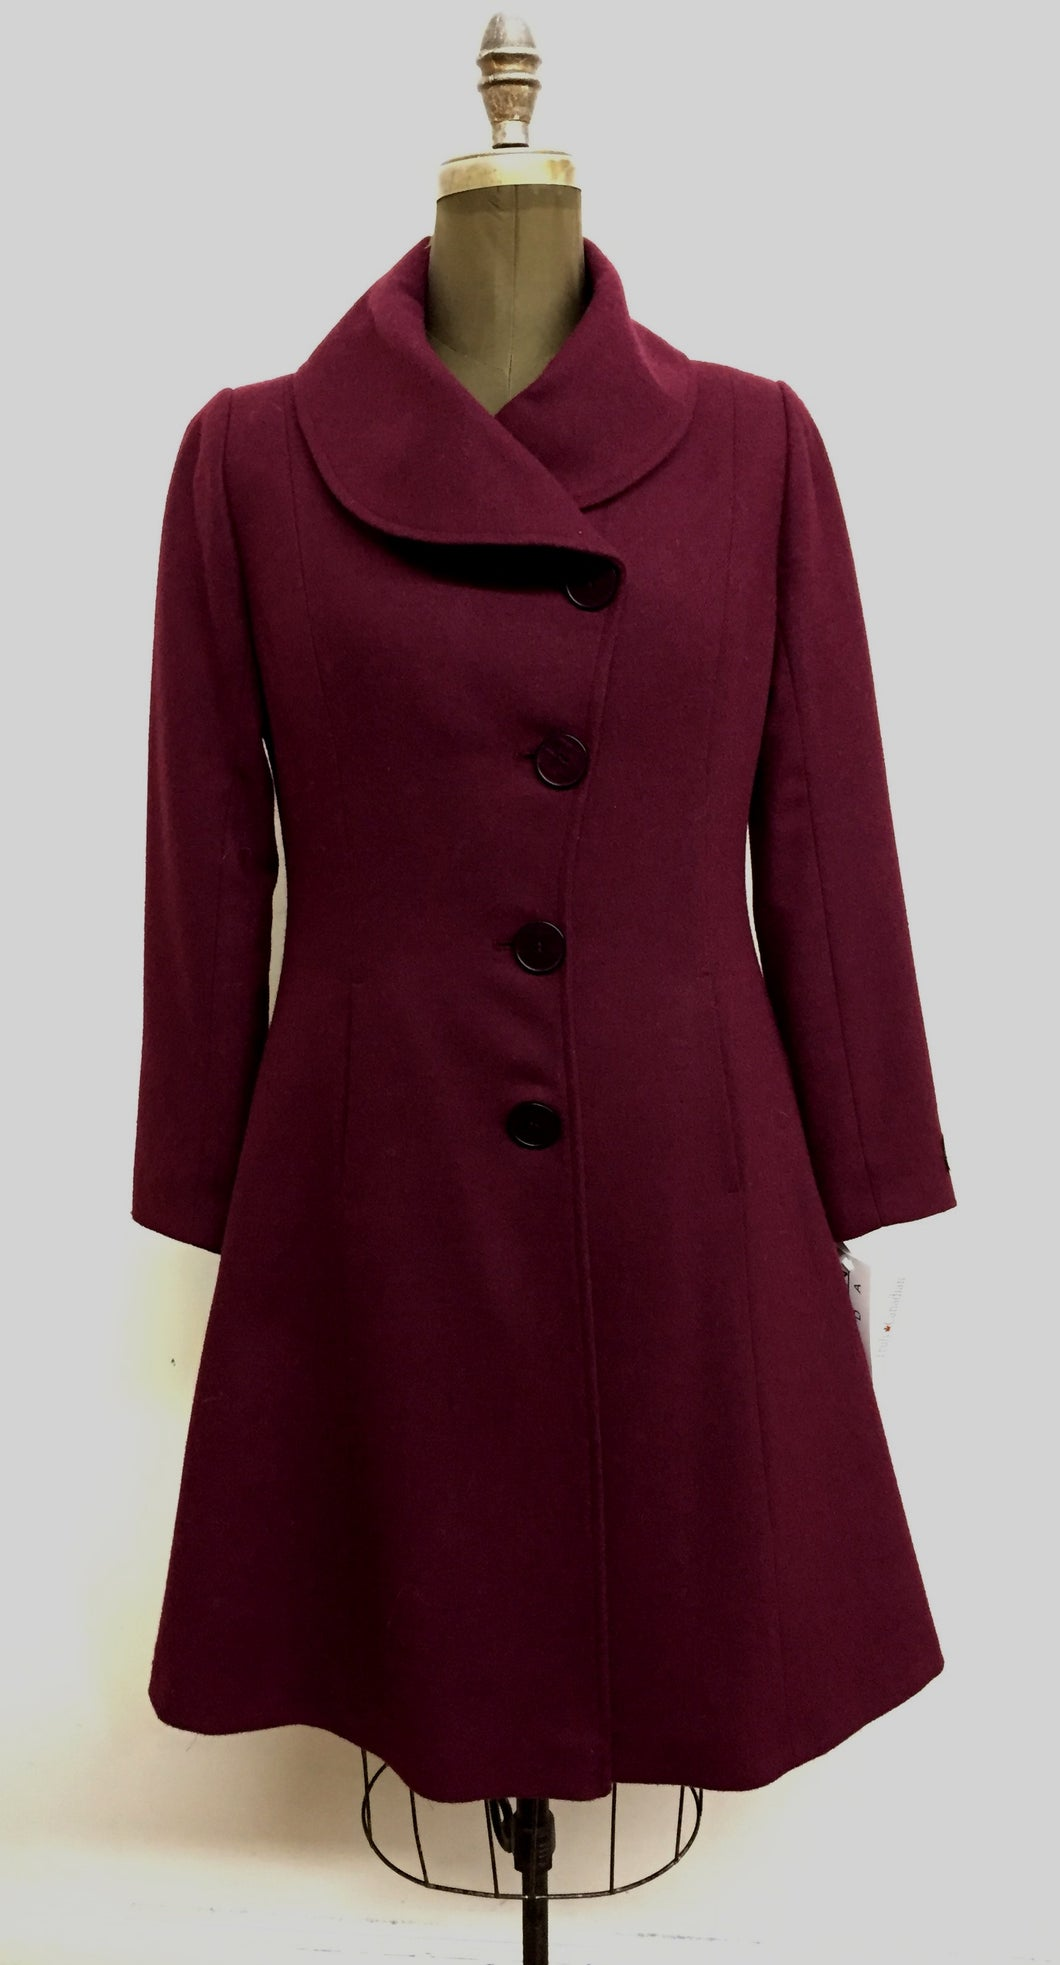 Elisabeth Fit & Flair Coat - 100% Pure Merino Wool